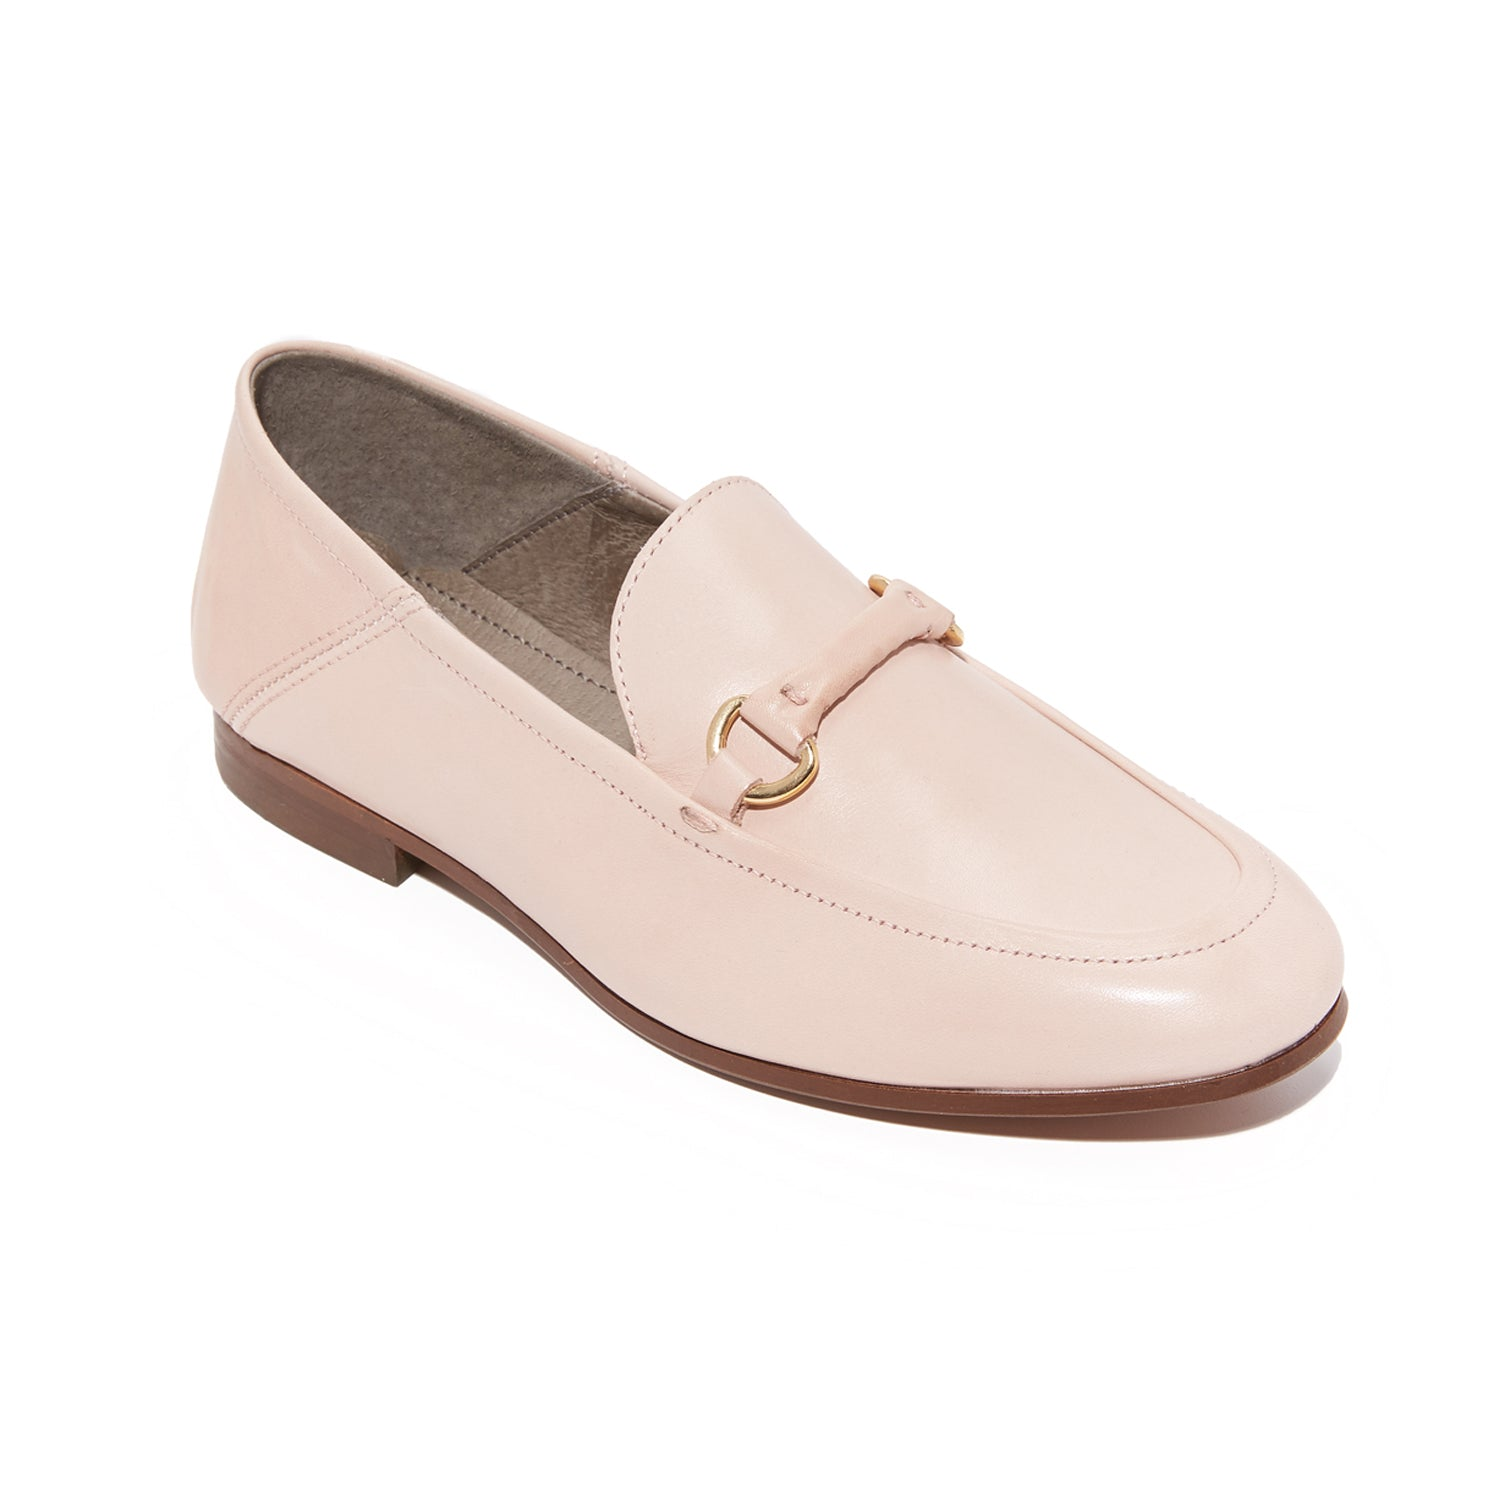 Hudson London Arianna Loafer 37 Blush Muse Boutique Outlet